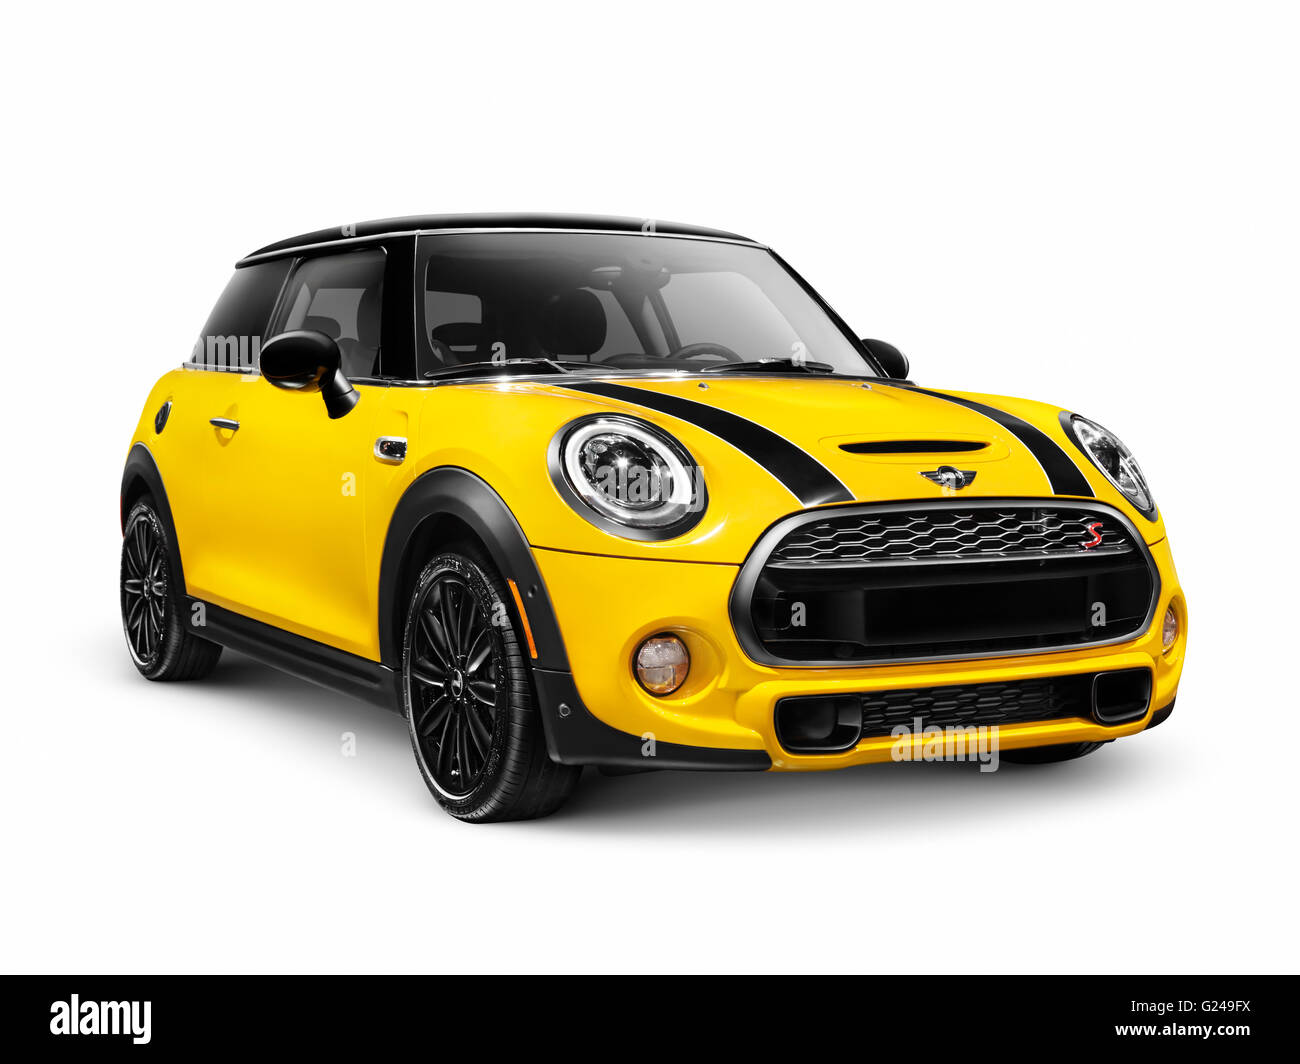 Yellow 2014 Mini Cooper S, Mini Hatch, hatchback compact city car - Stock Image